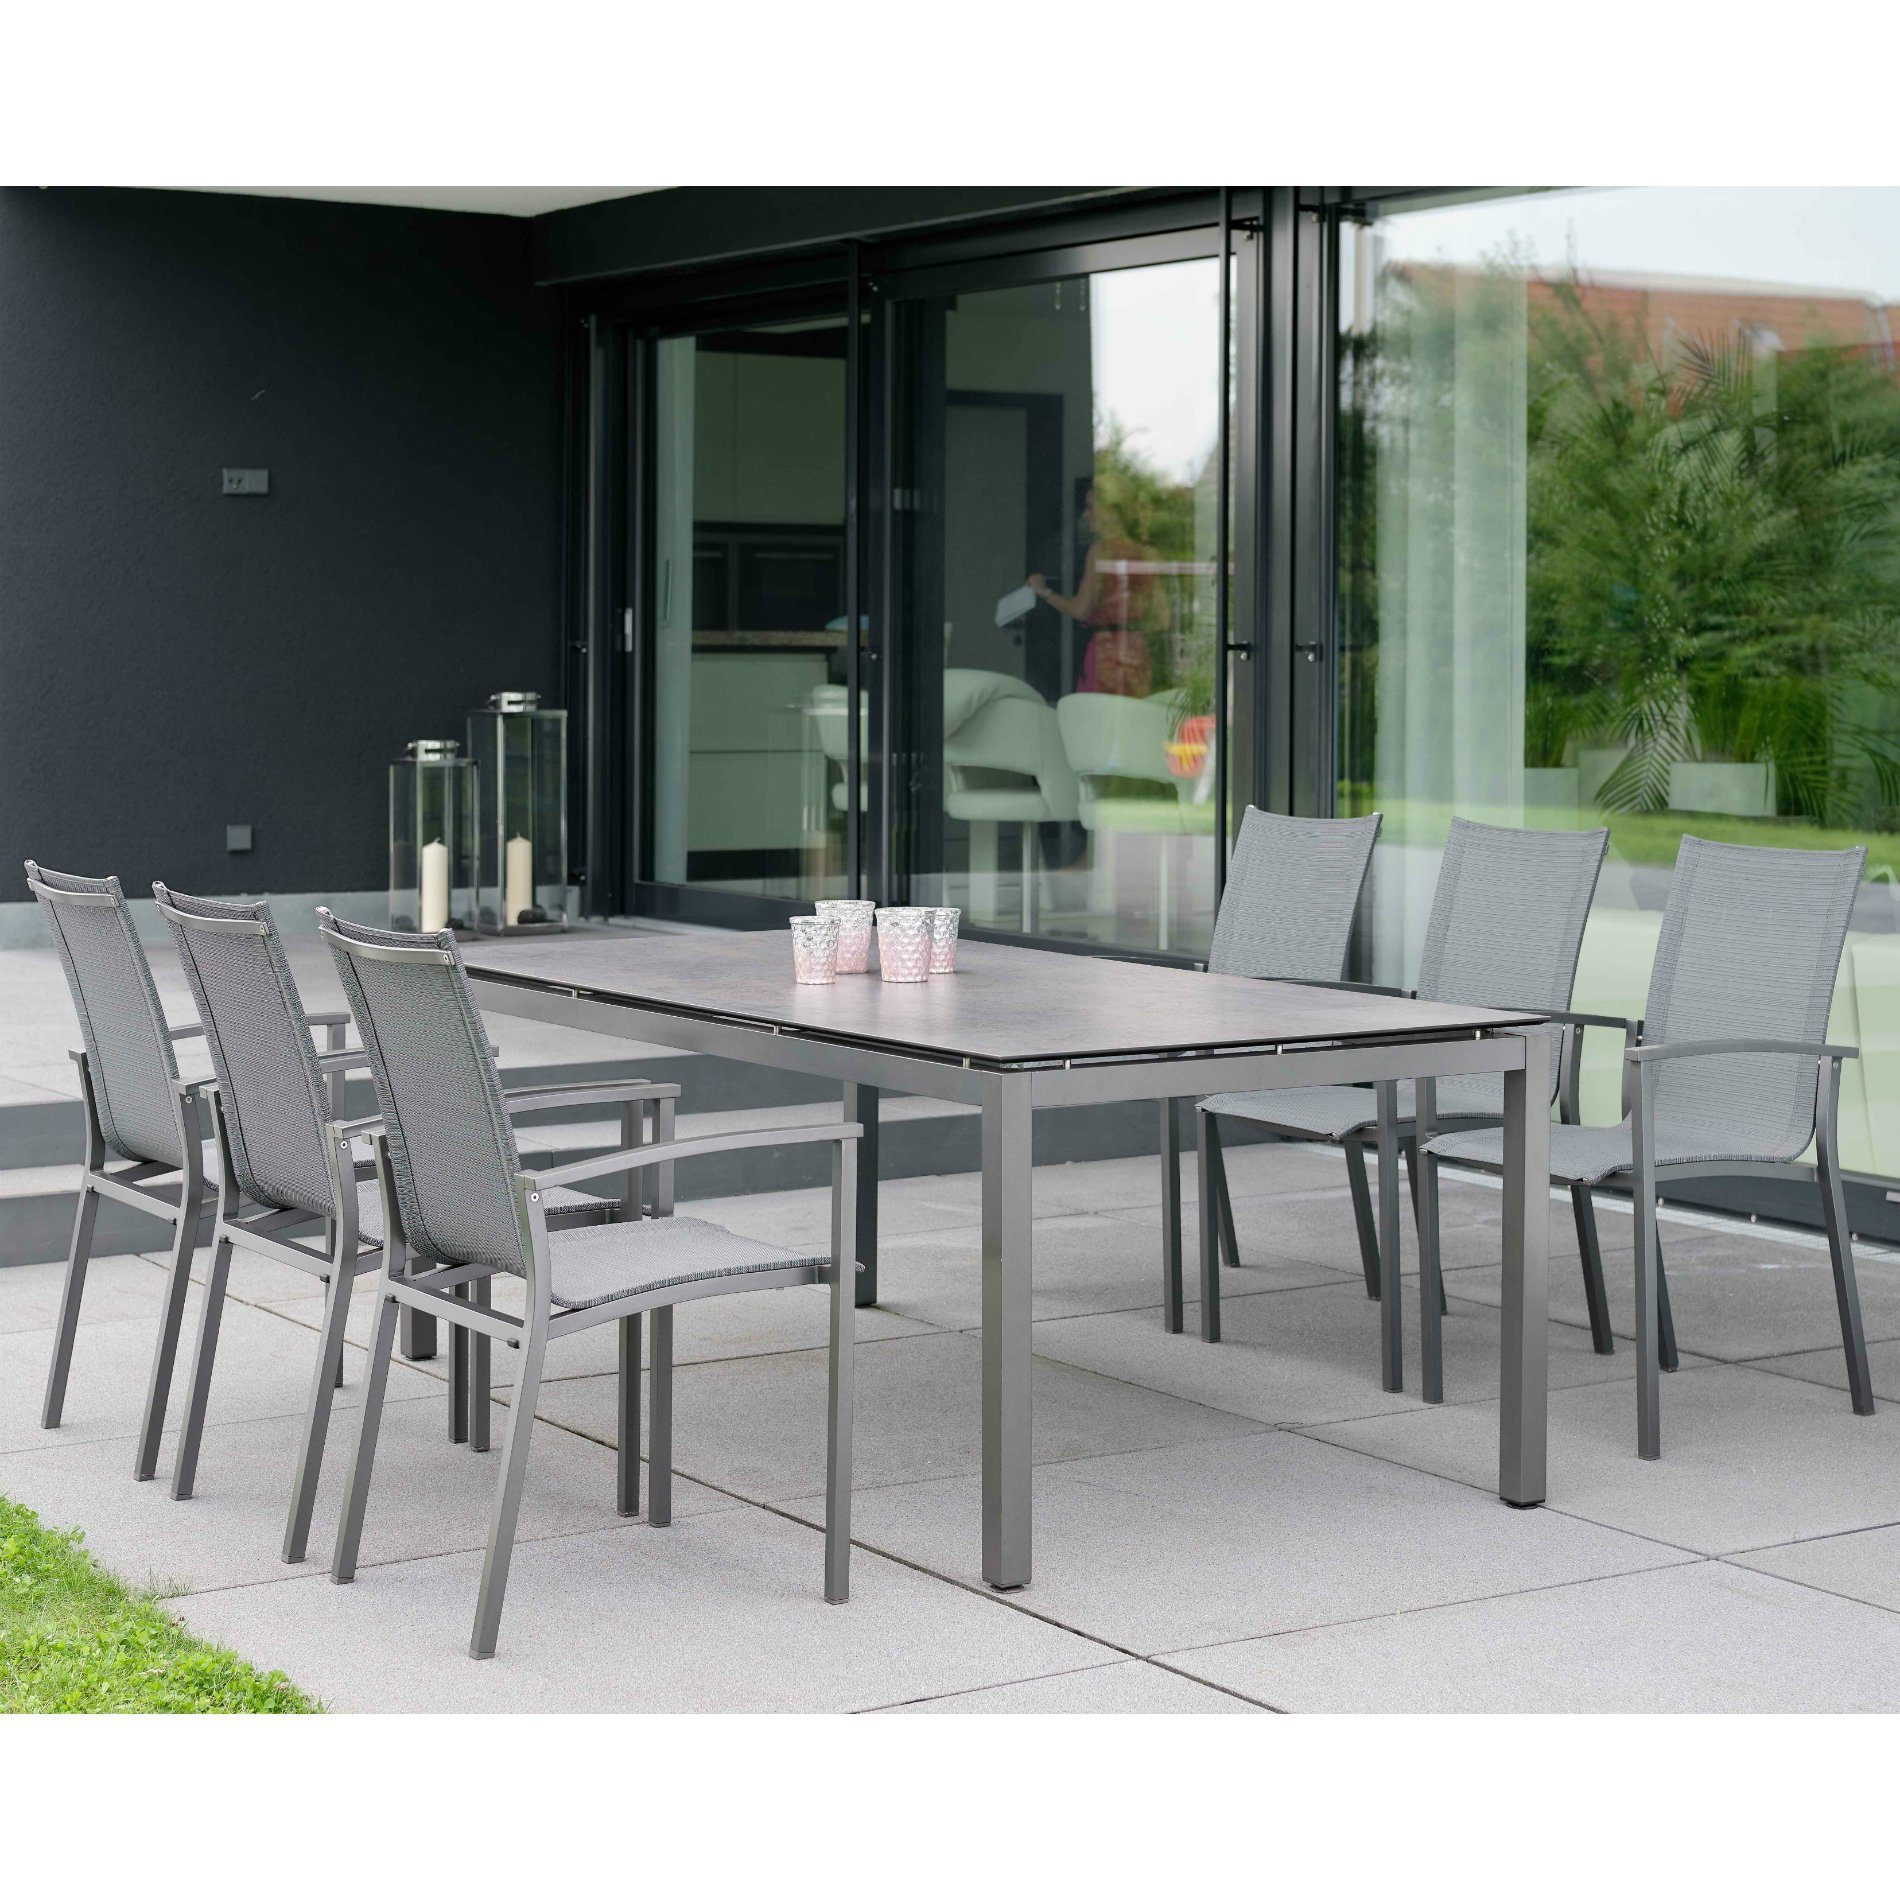 stern gartenm bel set mit stuhl evoee und gartentisch aluminium hpl. Black Bedroom Furniture Sets. Home Design Ideas